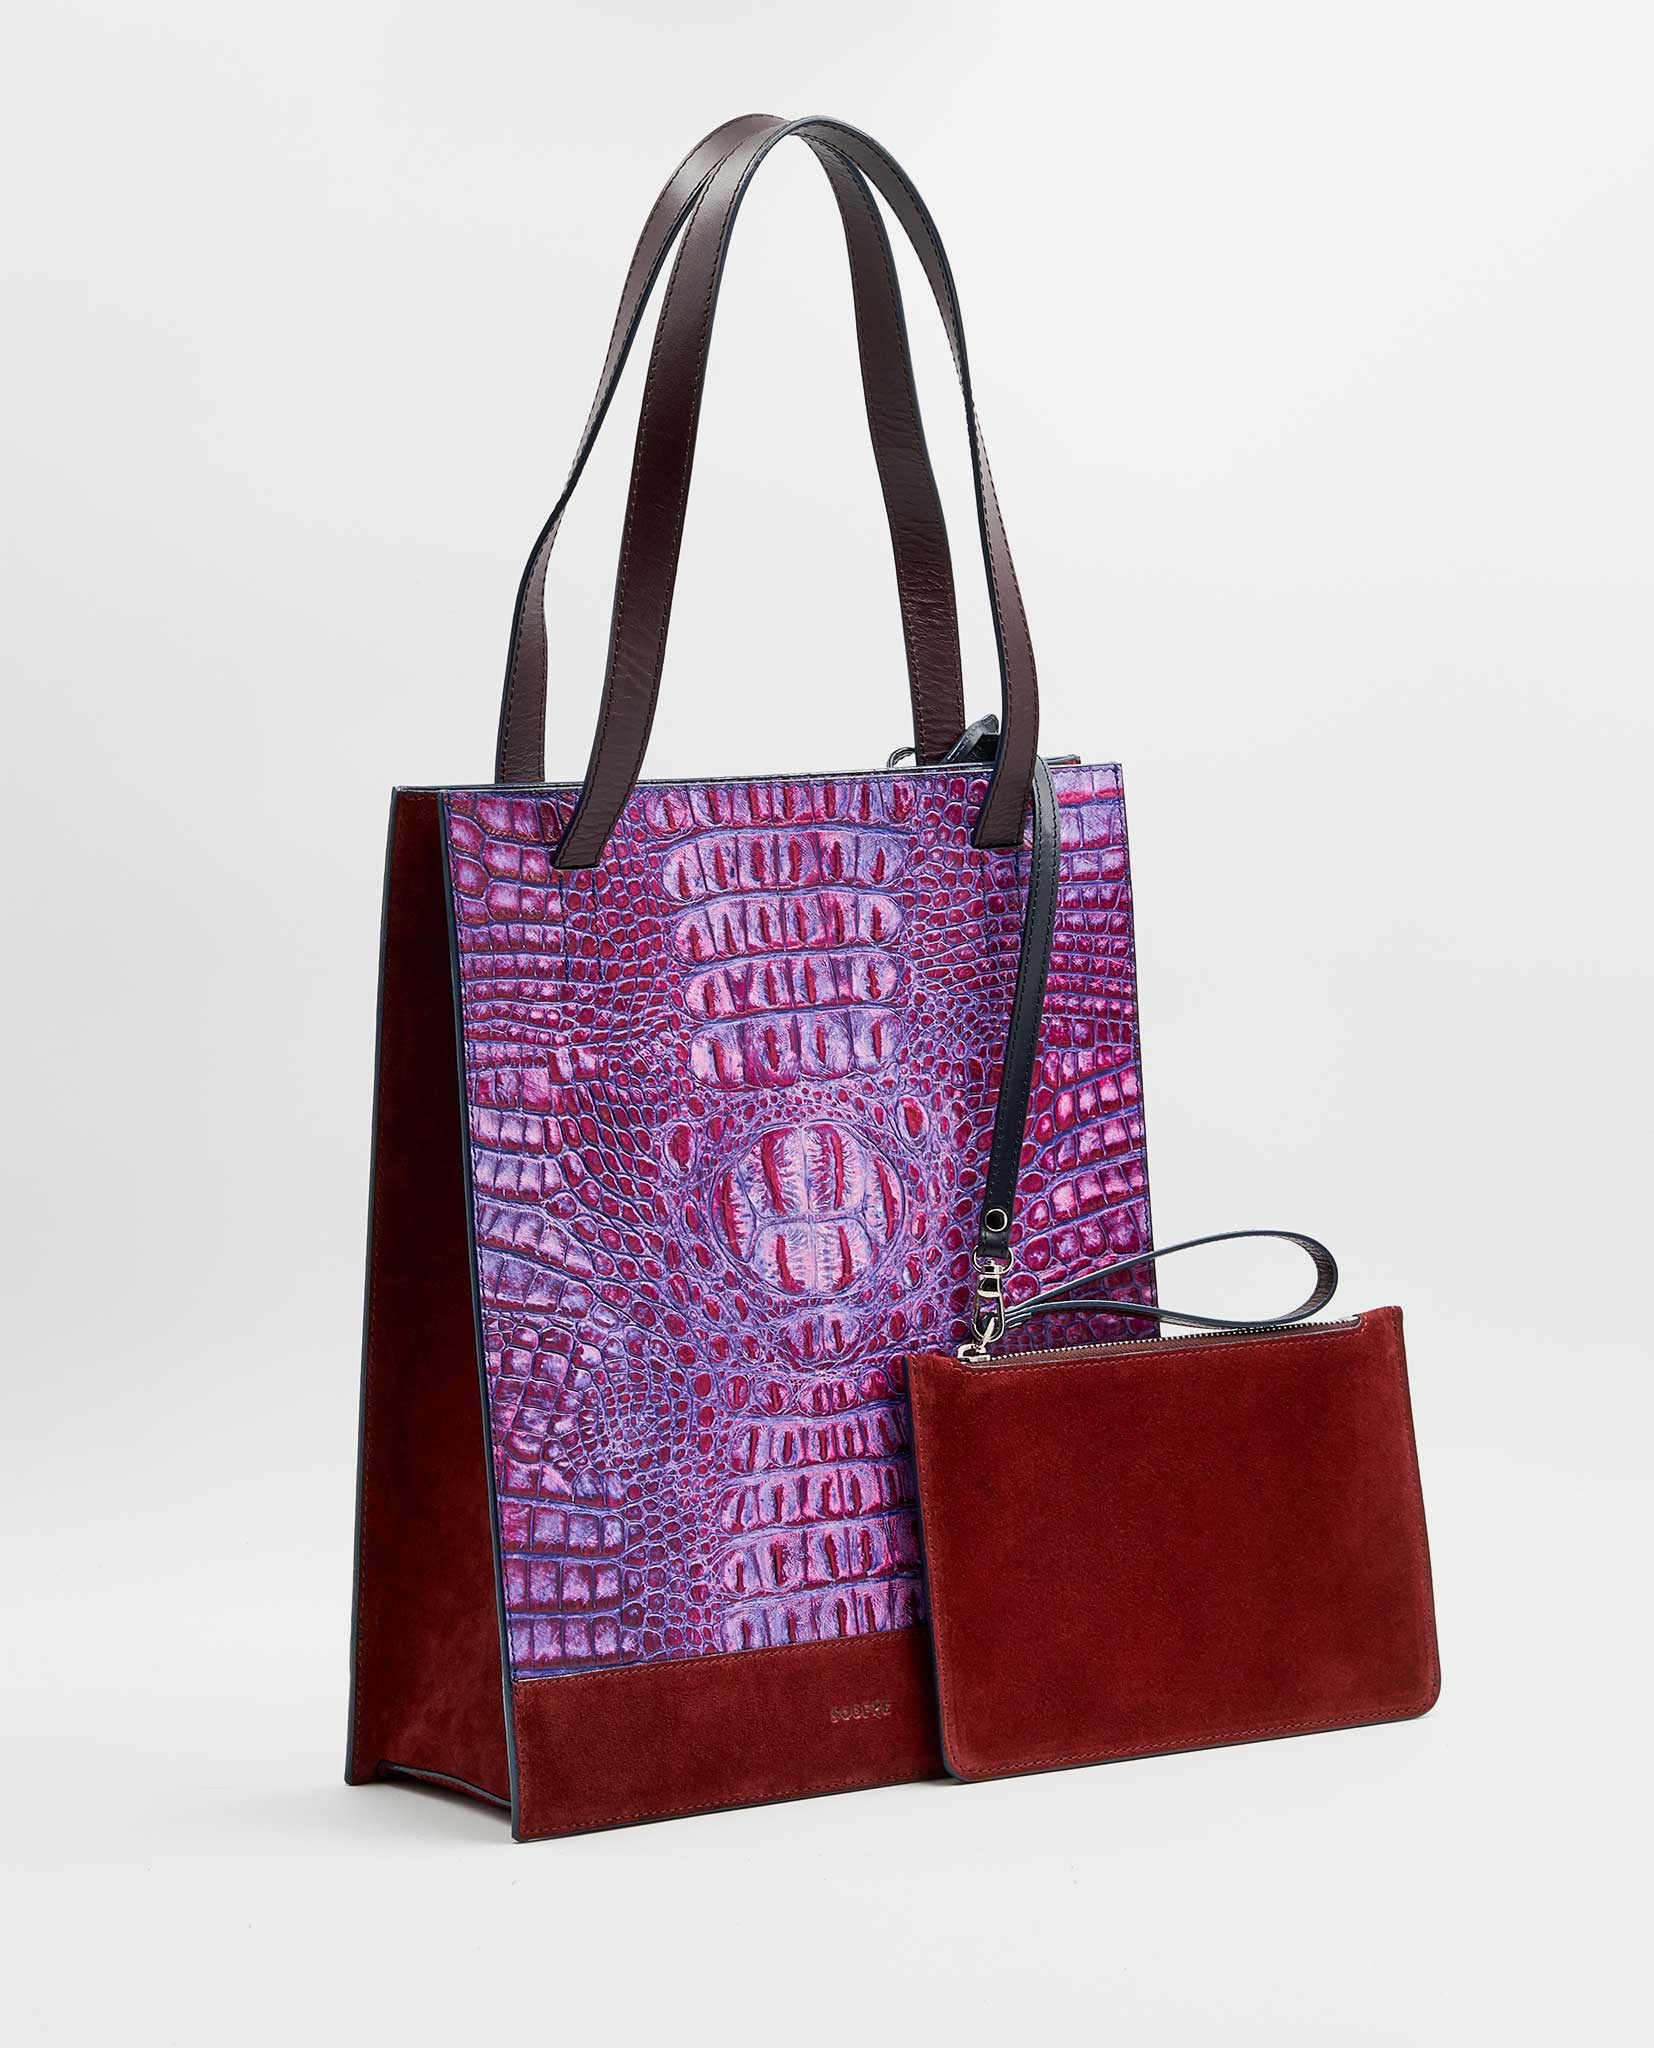 SOOFRE Berlin unique Croco Shopper Bag purple lilac burgundy